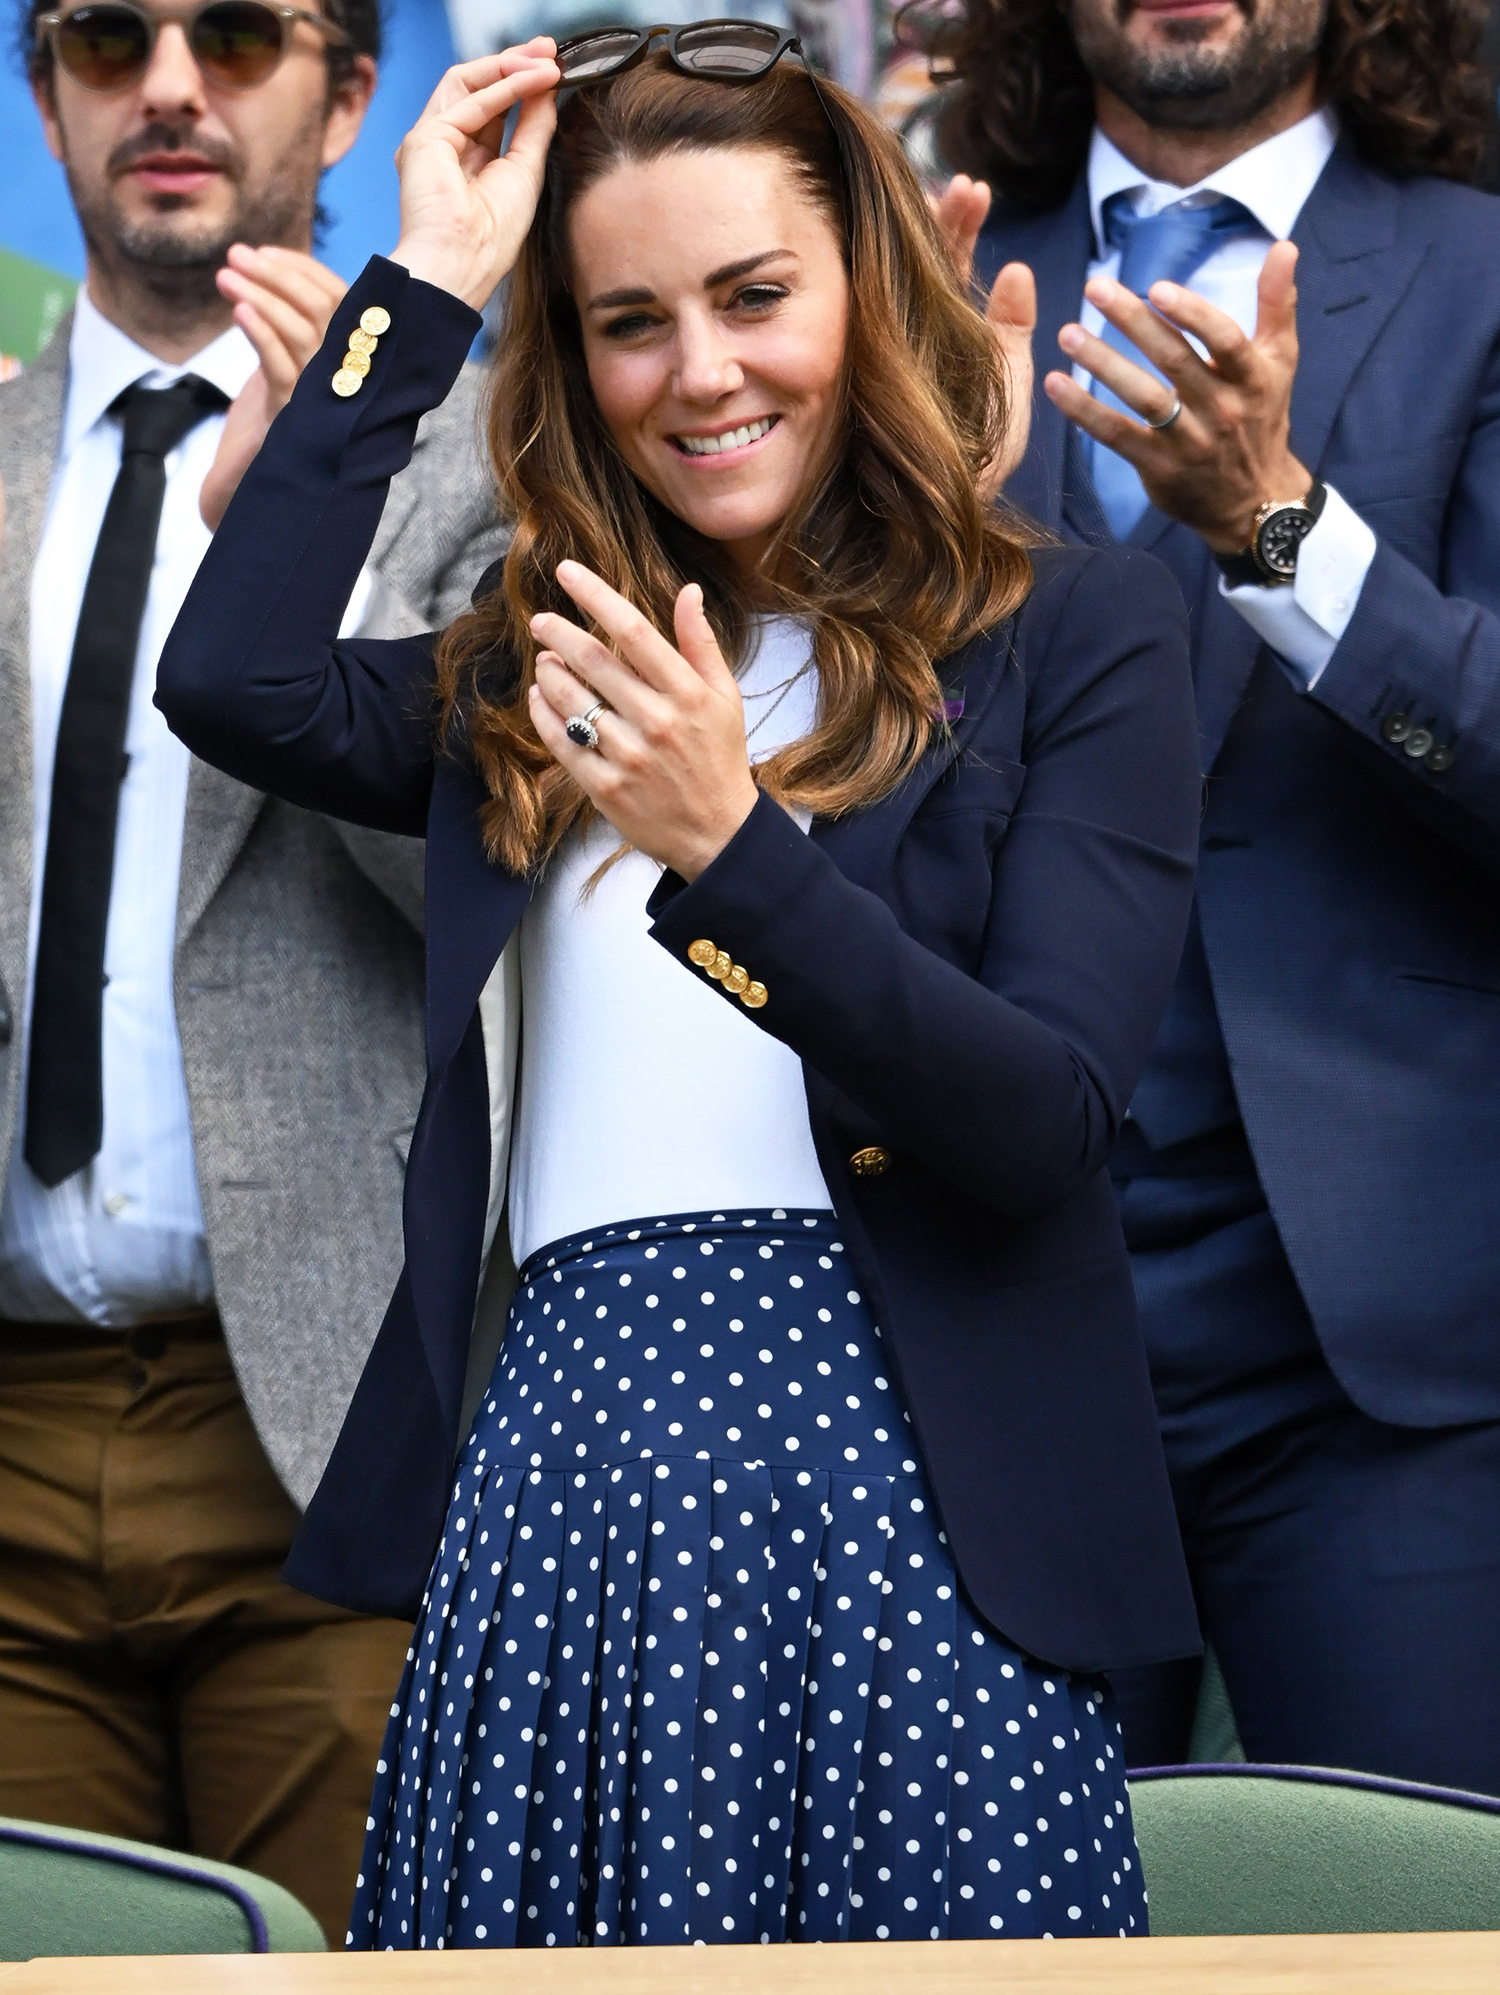 Catherine, Duchess of Cambridge attends the Wimbledon Tennis Championships at the All England Lawn Tennis and Croquet Club on July 02, 2021 in London, England.